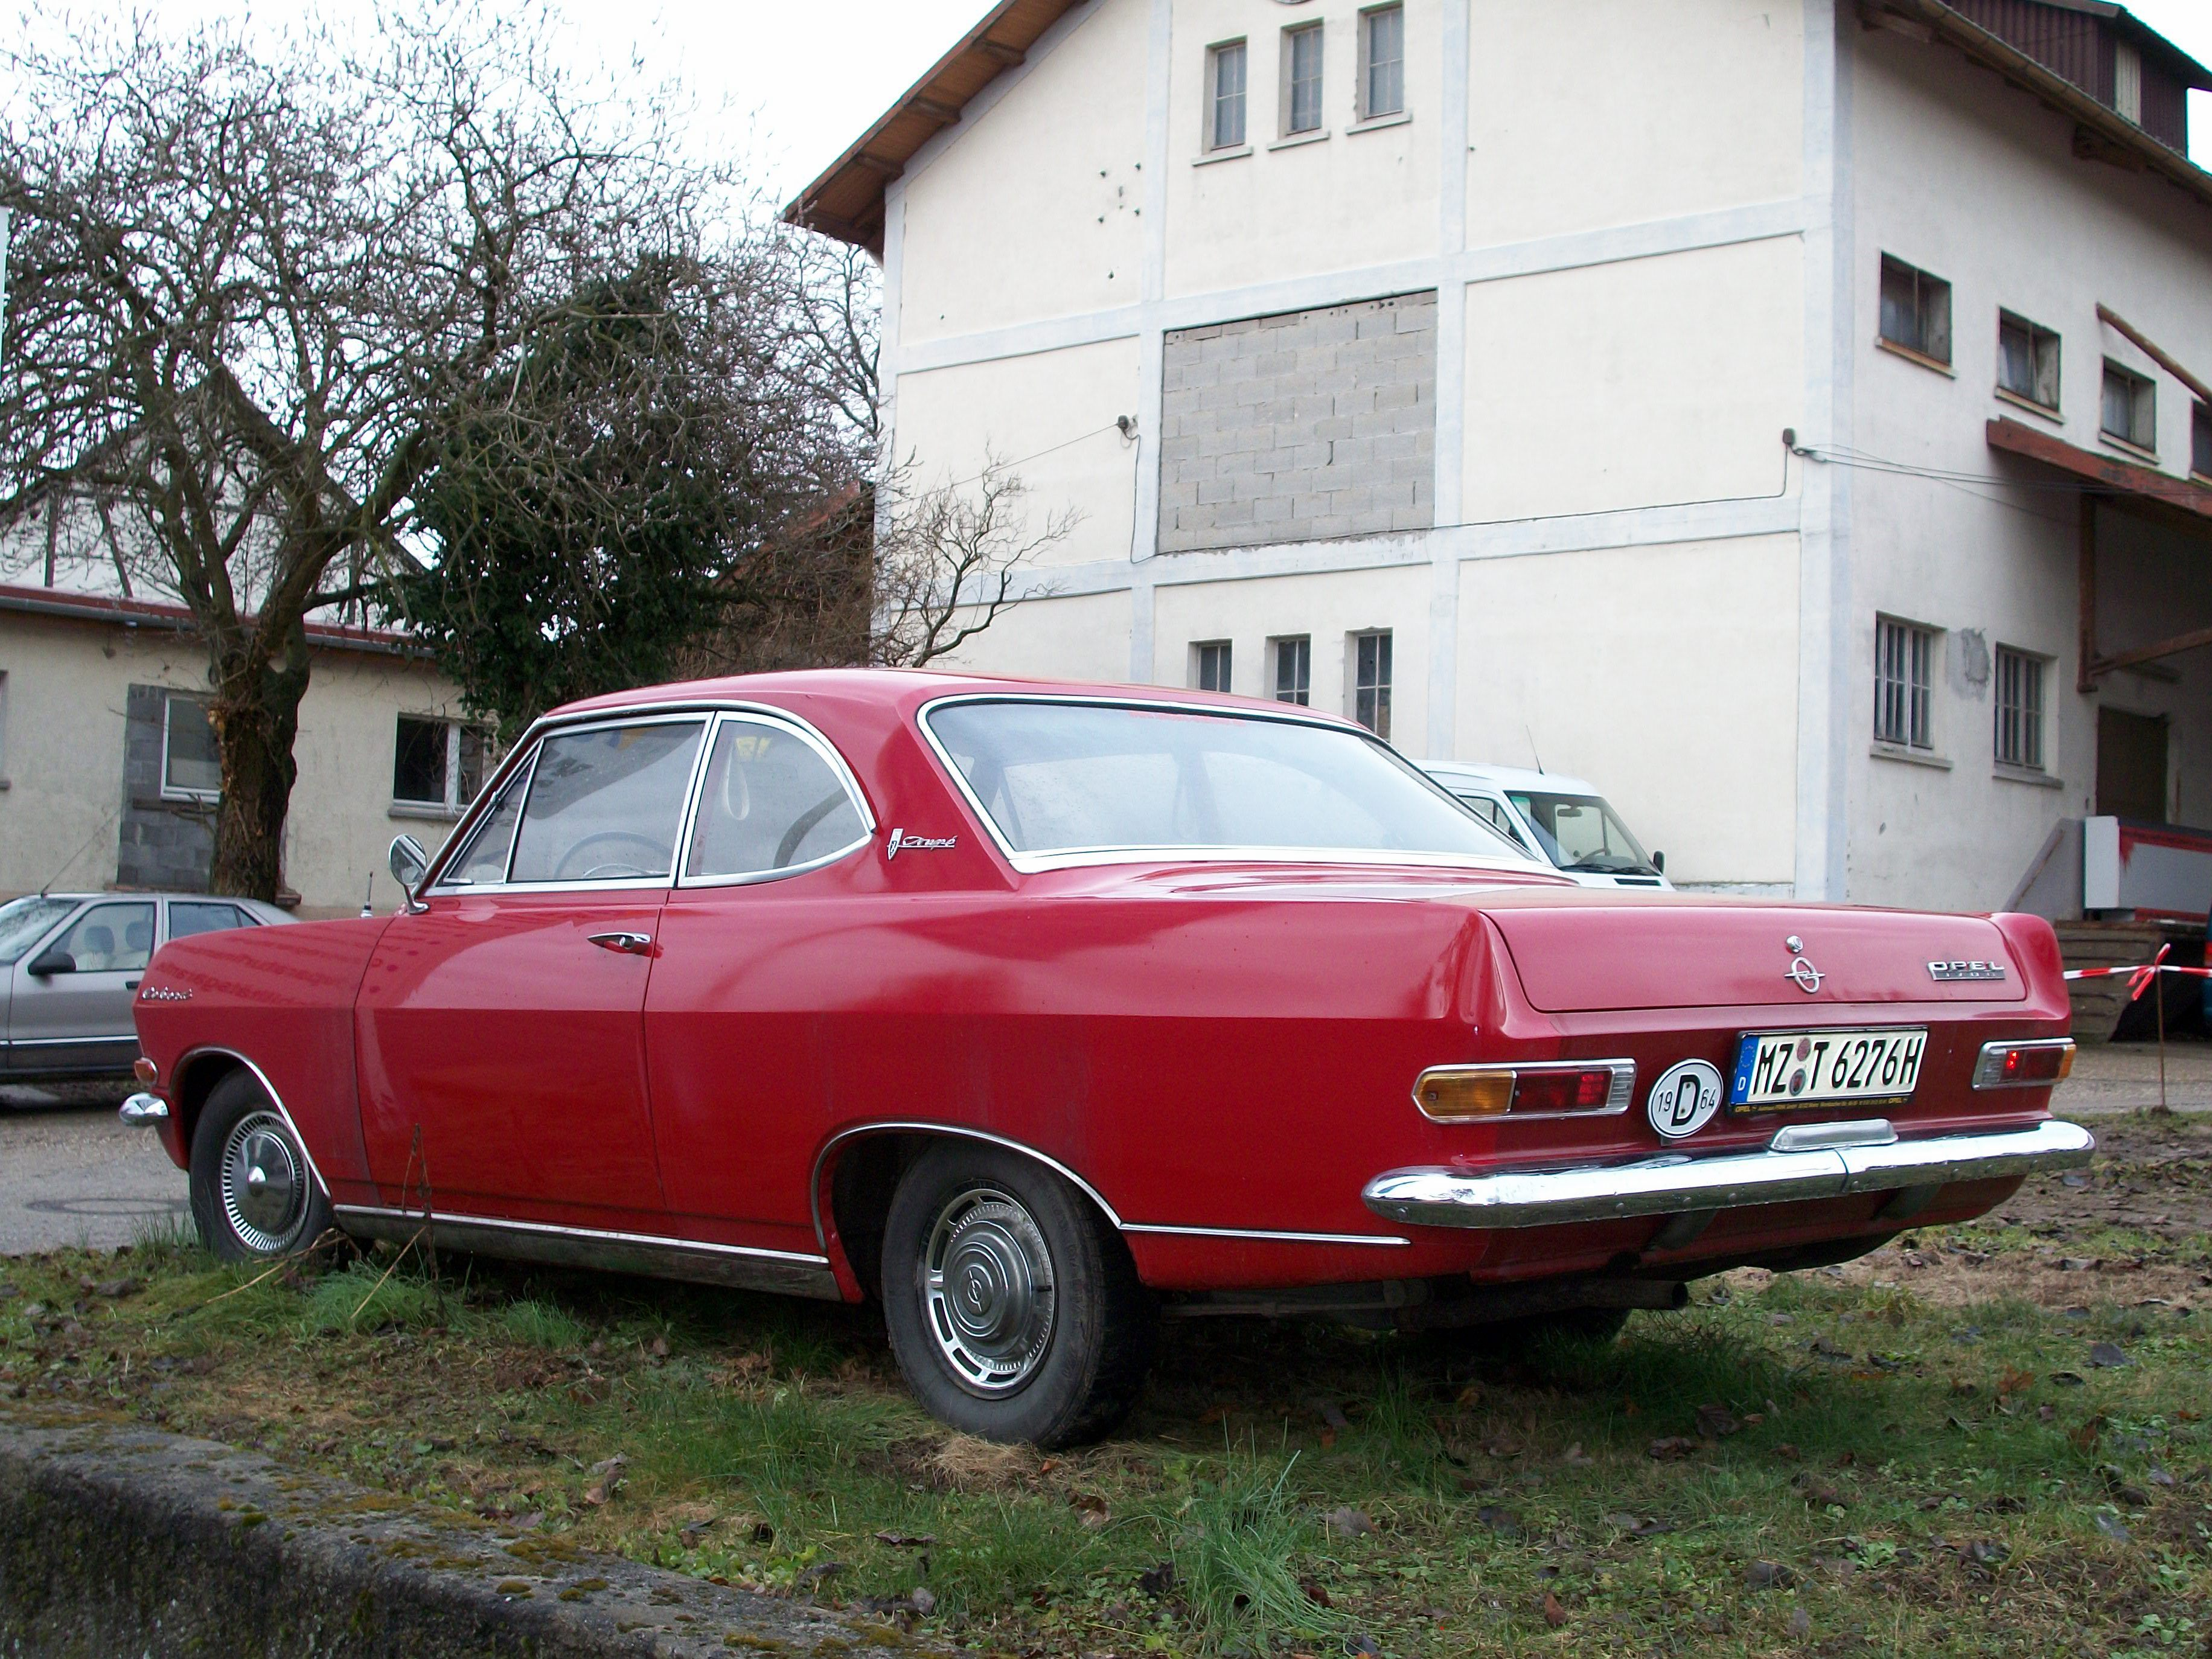 258, Opel Rekord 1700 Coupe